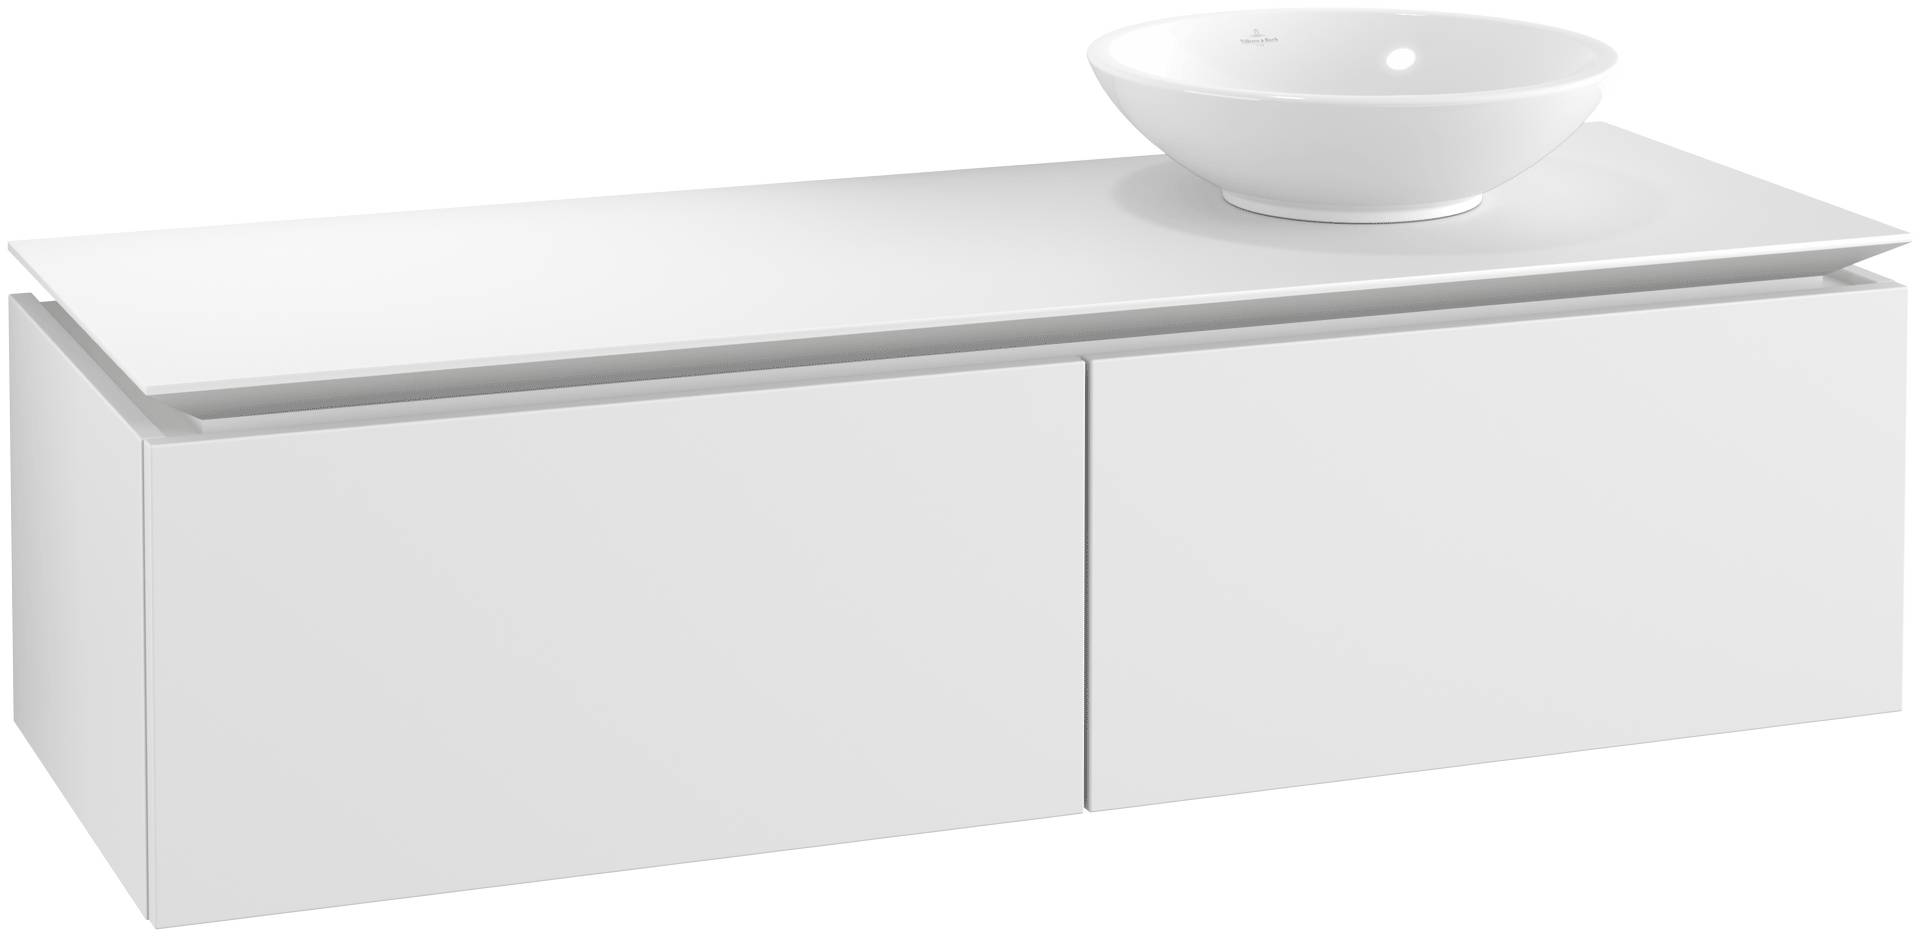 Villeroy & Boch Villeroy & Boch Legato - Meuble sous lavabo with 2 drawers & 1 cut-out right 1400 x 380 x 500mm blanc mat